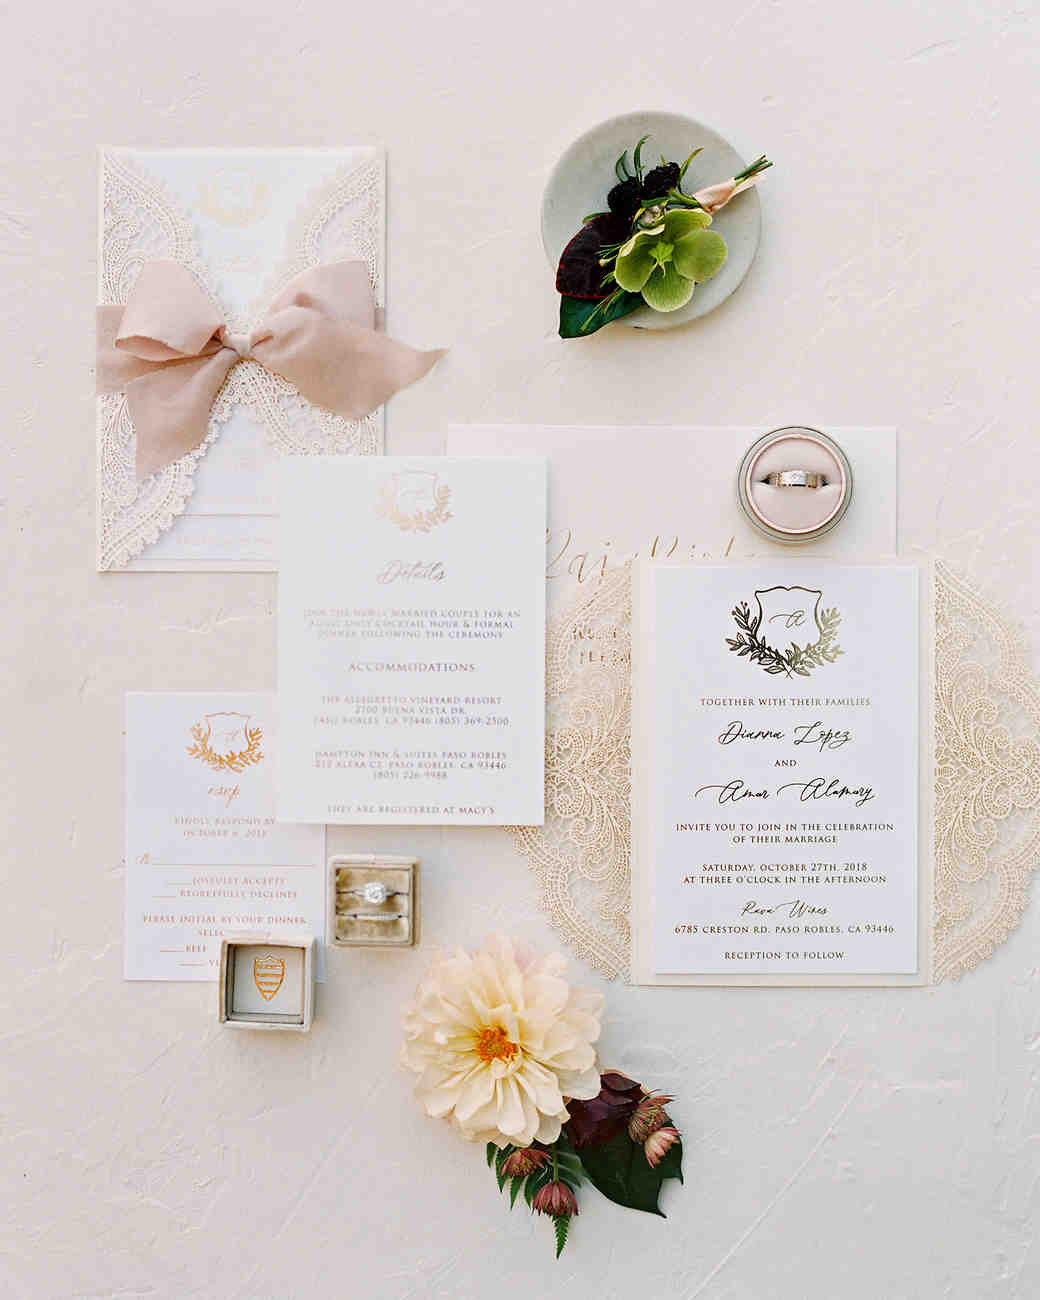 dianna amar wedding invites